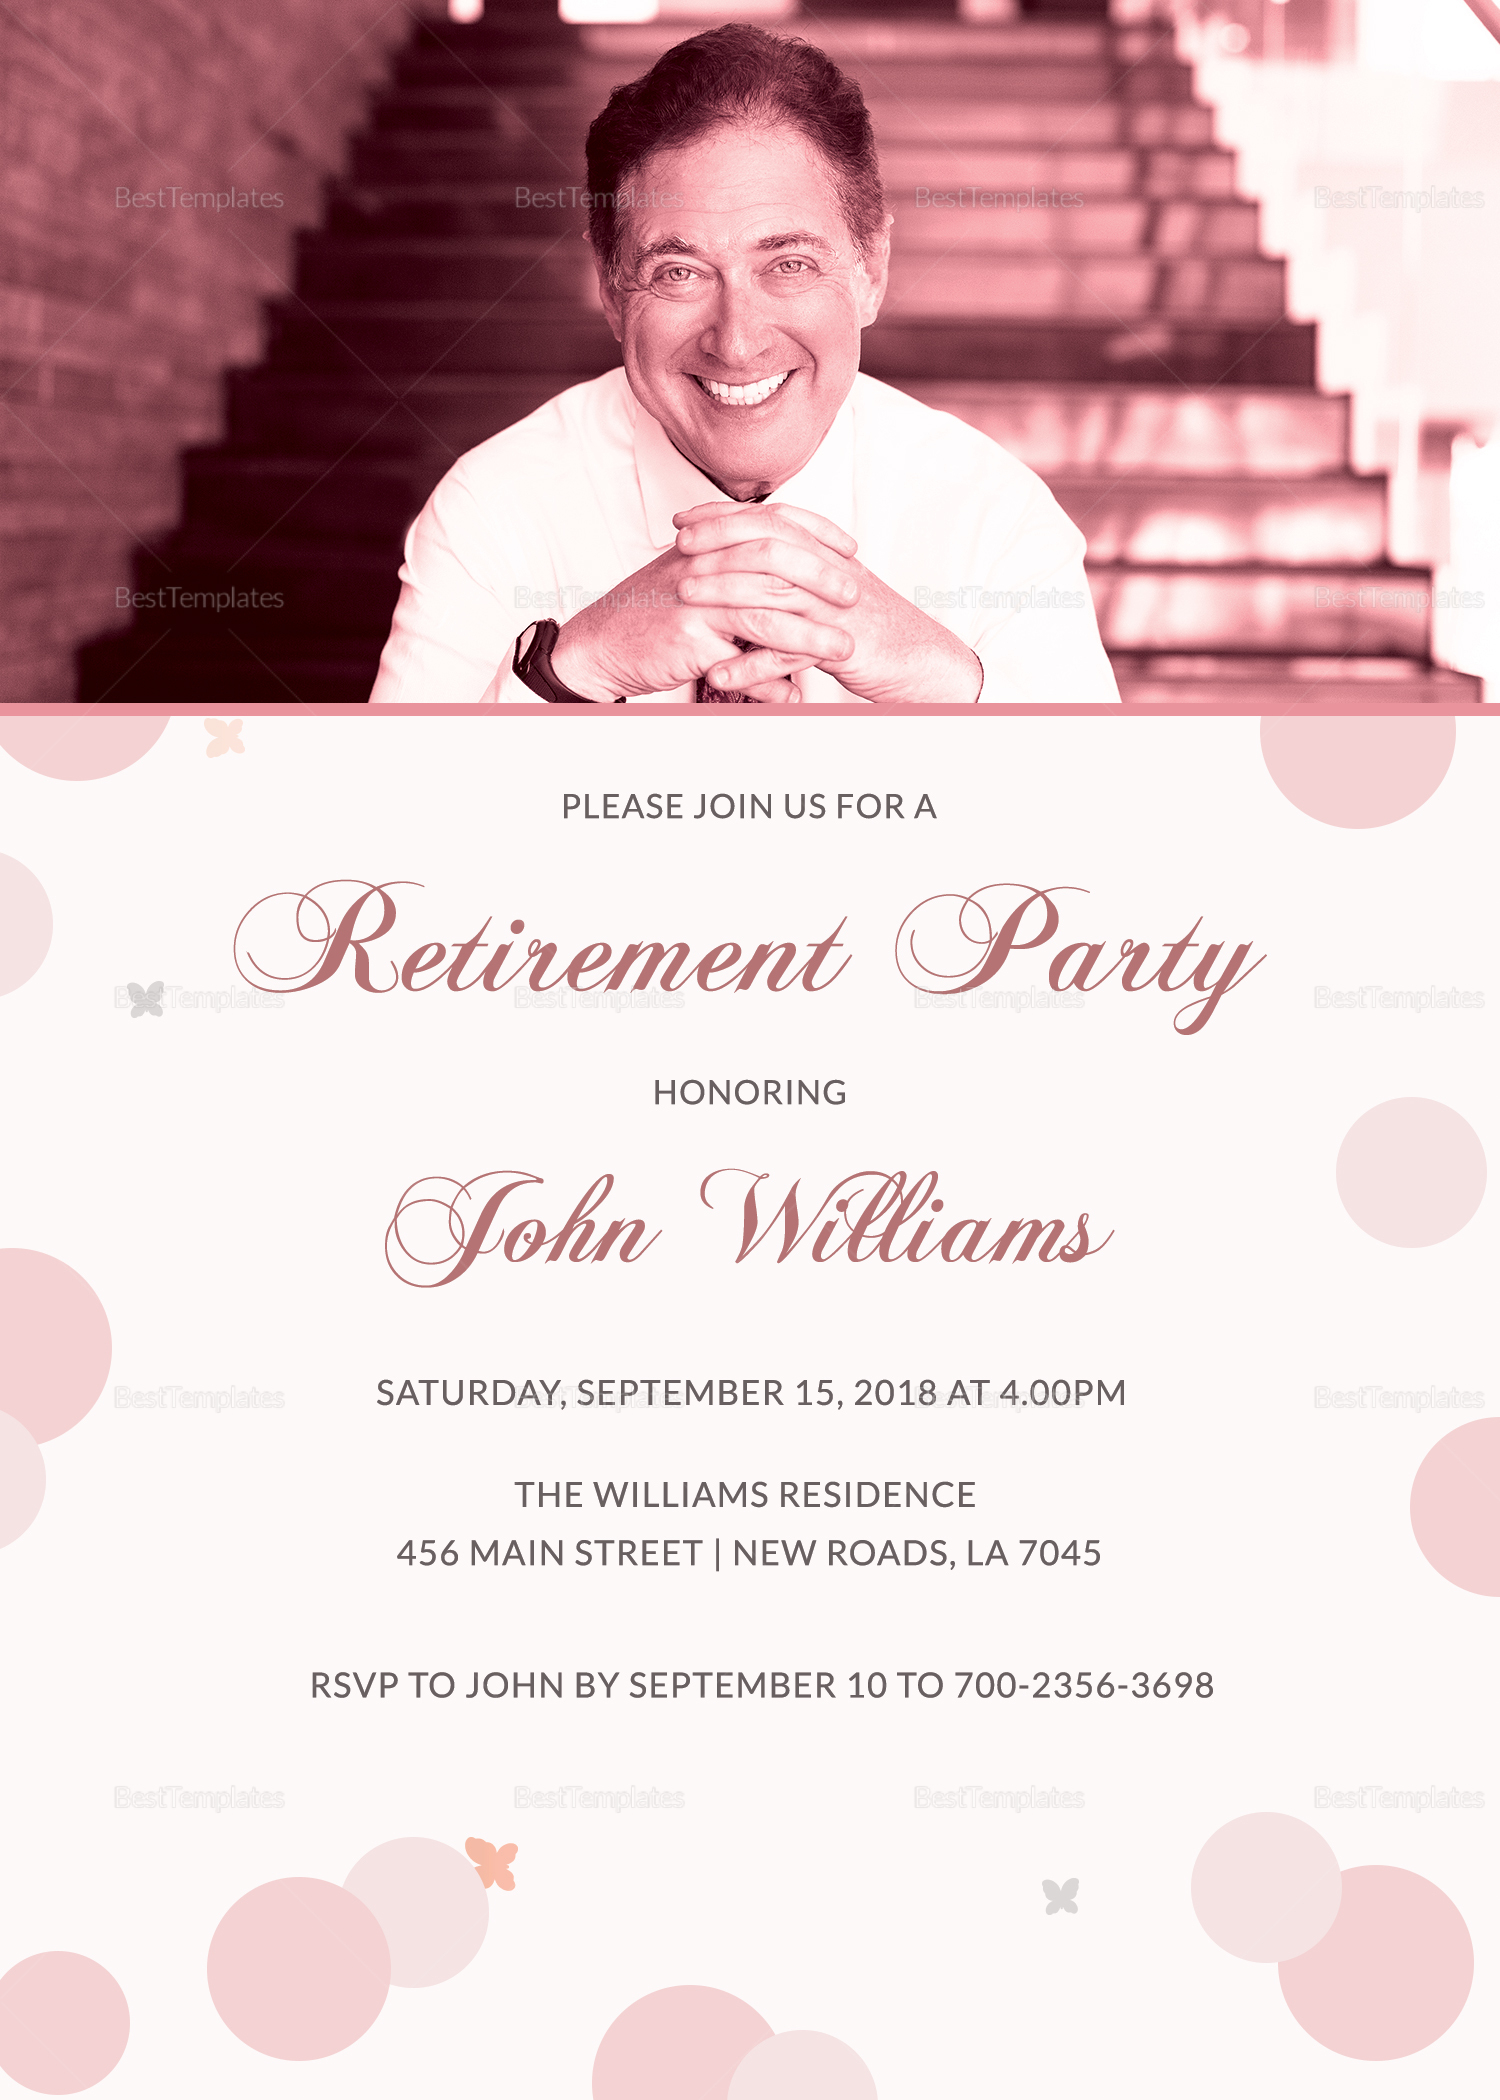 honored retirement party invitation card design template